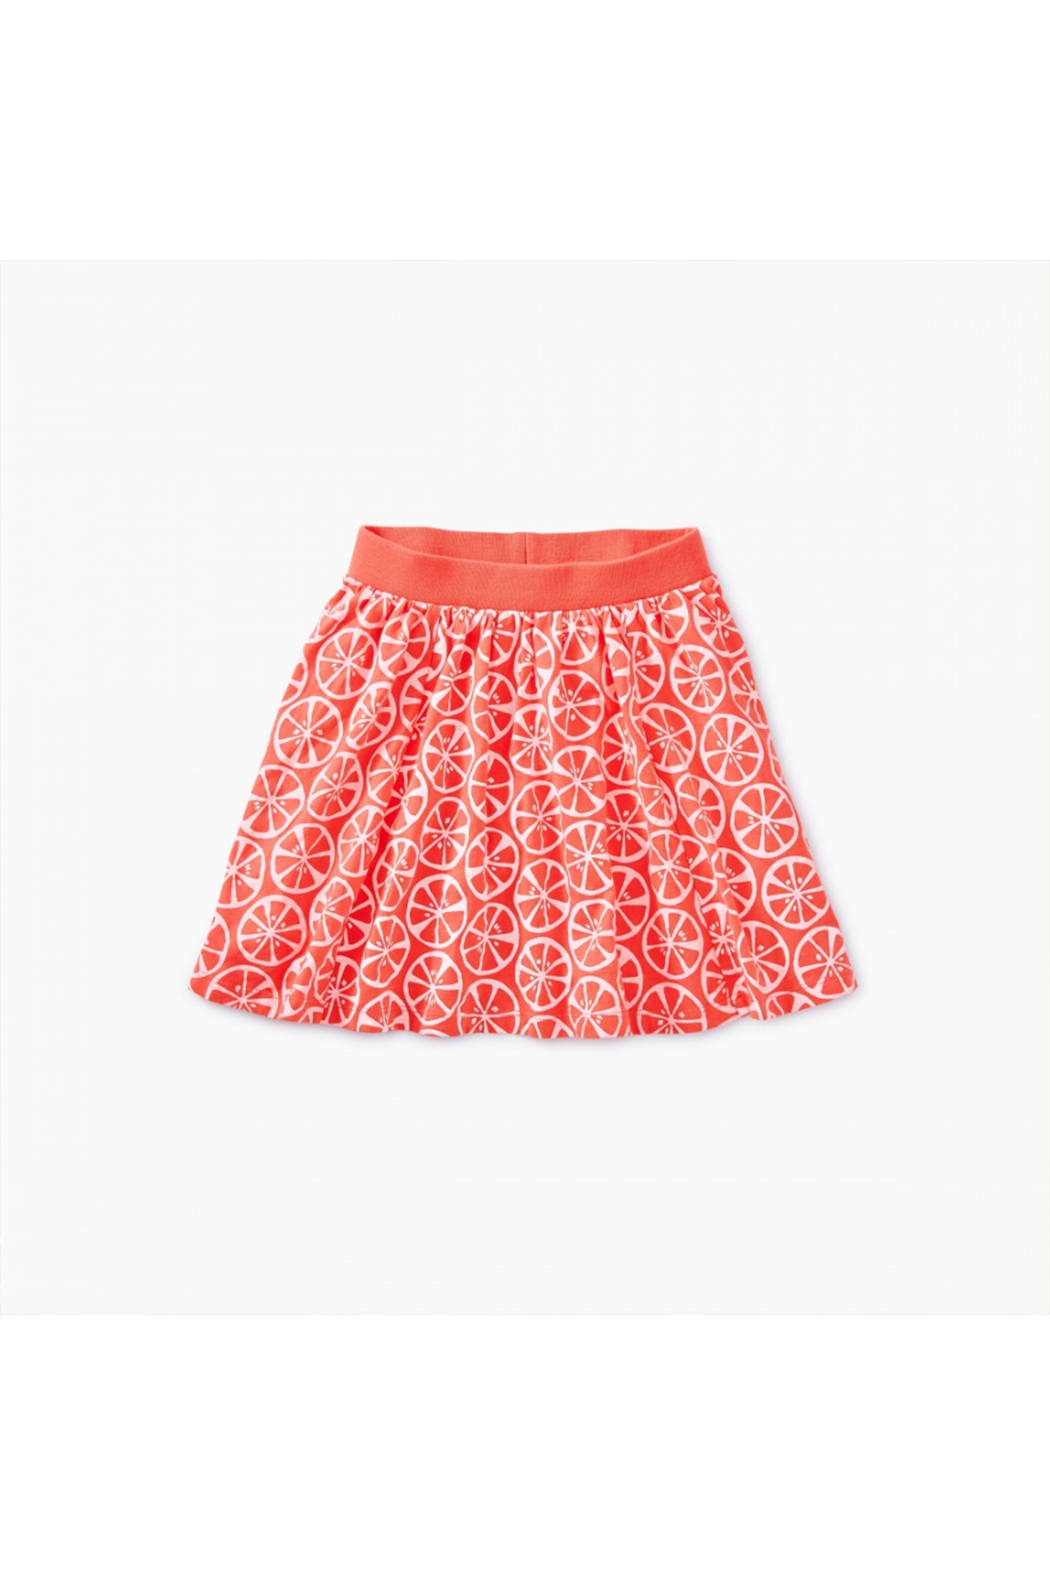 Tea Collection Printed Twirl Skort - Front Cropped Image